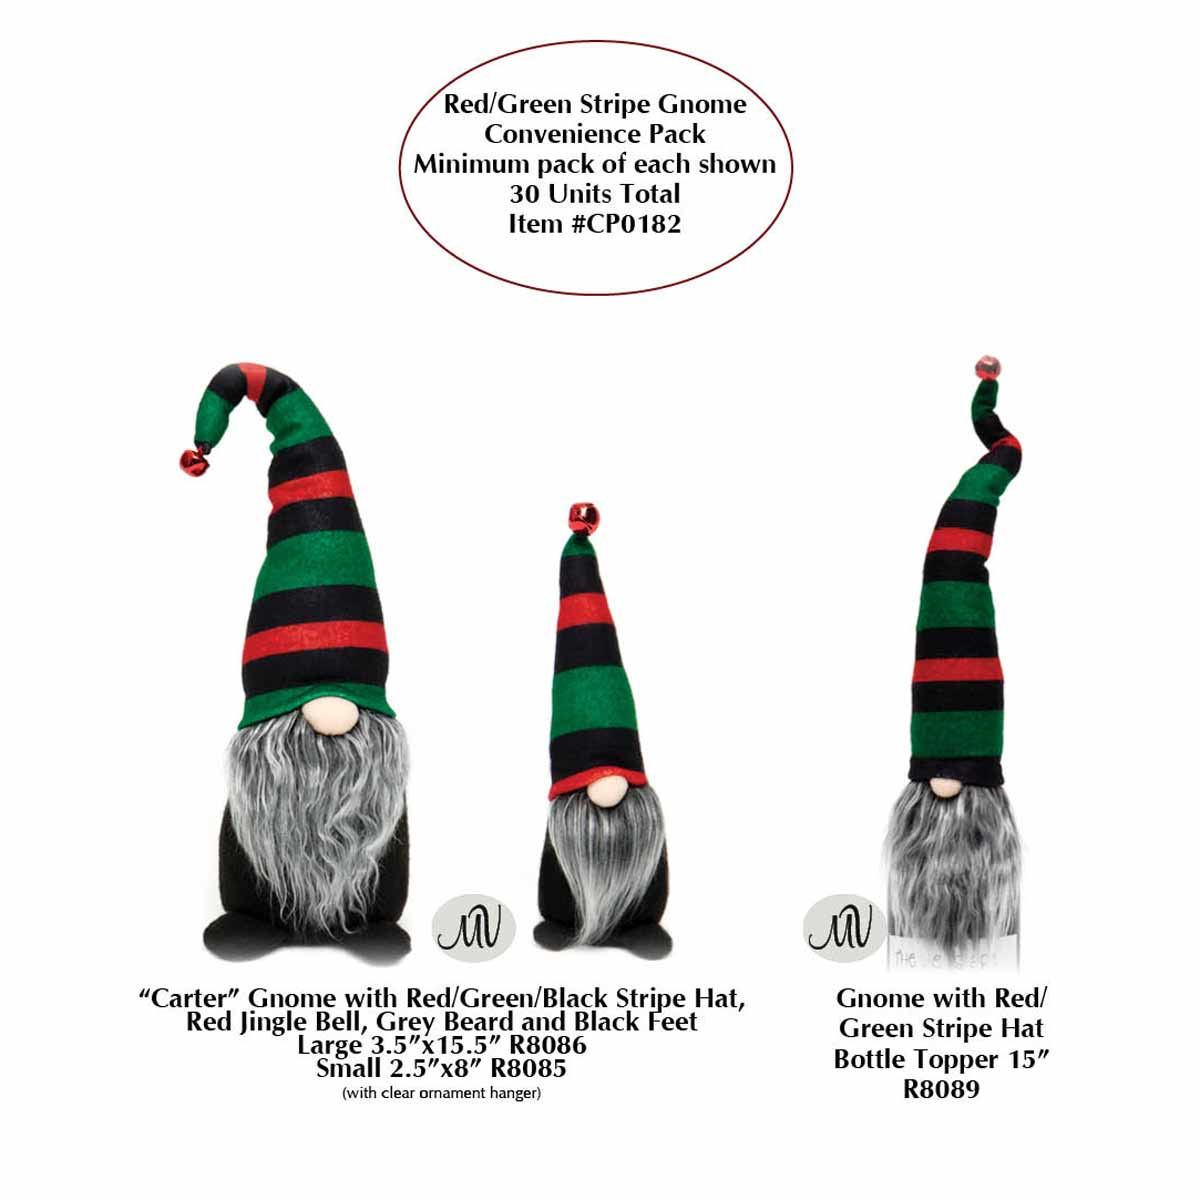 RED/GREEN STRIPE GNOME CONVENIENCE PACK 30 UNITS